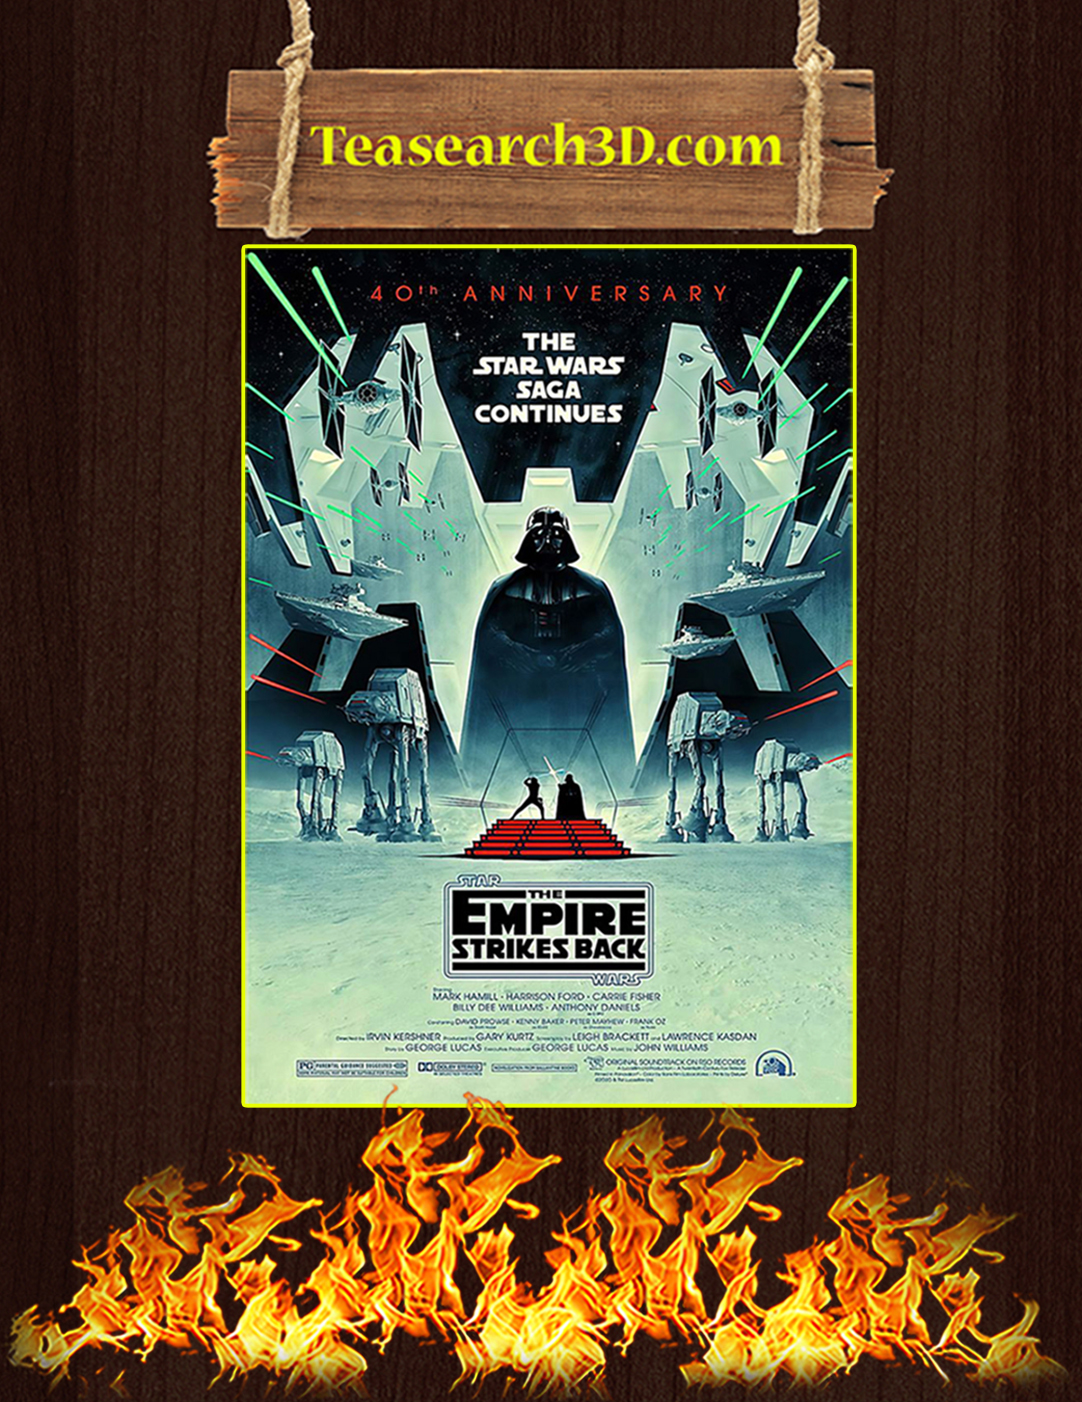 The star wars saga continues 40th anniversary poster A2